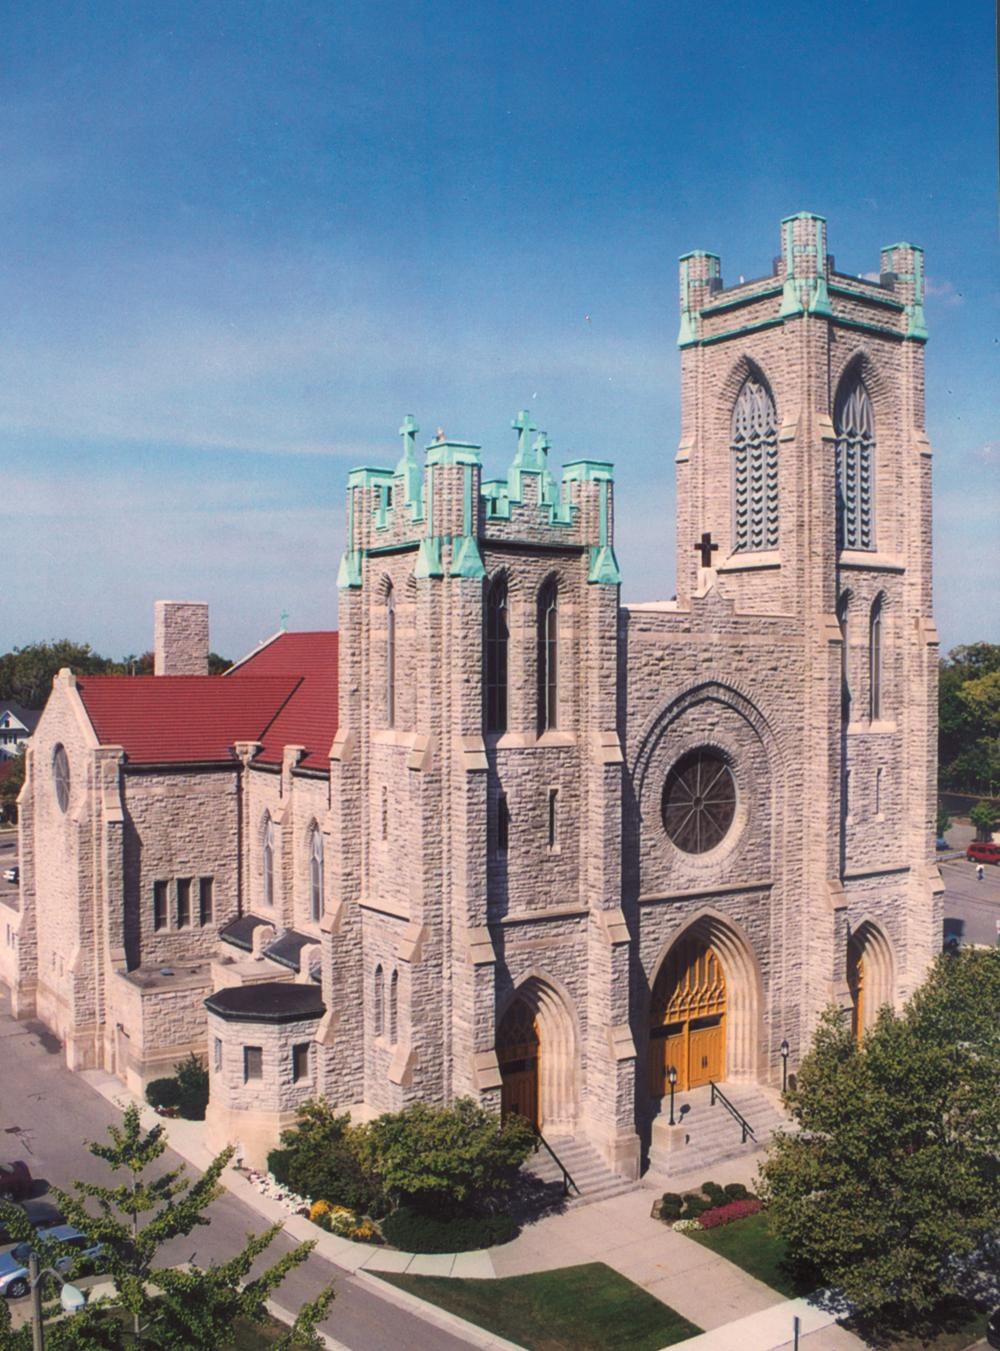 St. Mary Cathedral - Our shared treasure